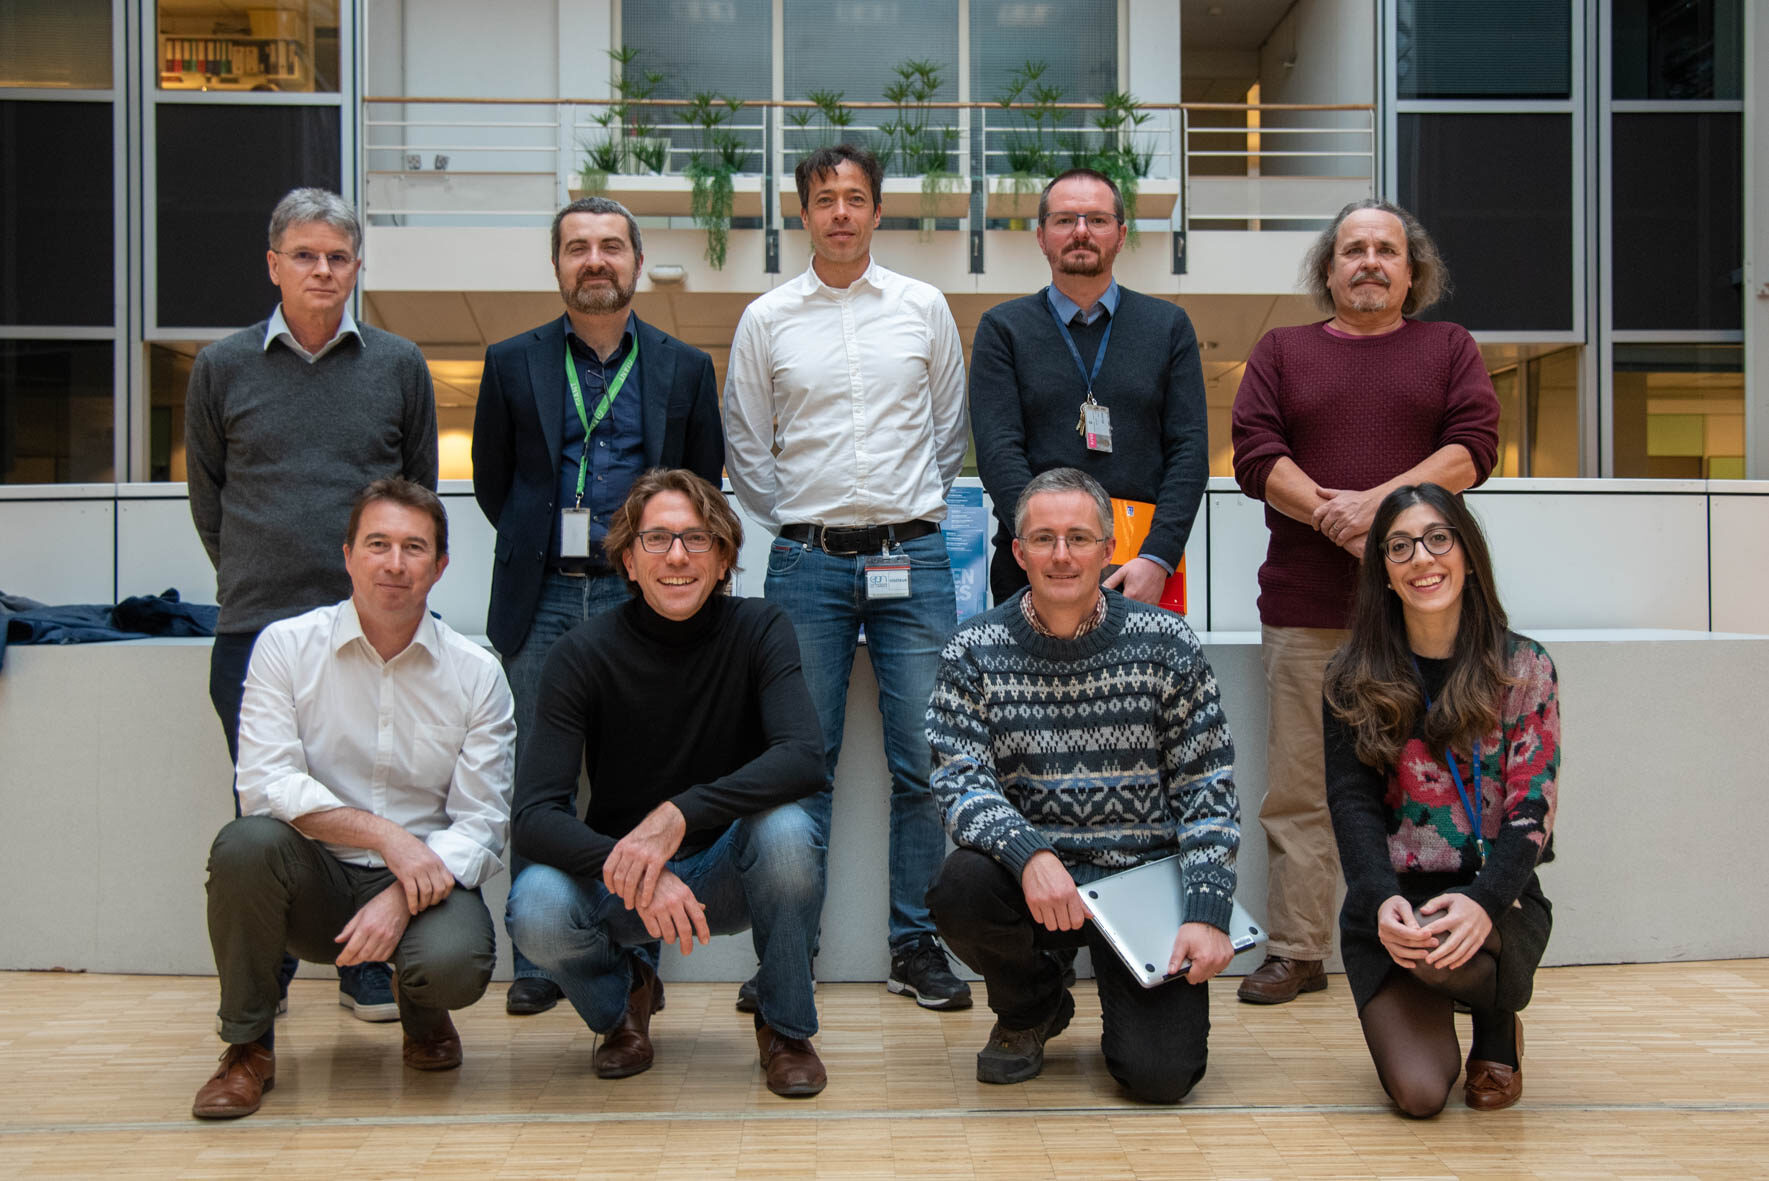 BASF at the ESRF on 28 January 2020 (From left to right, upper row: A. Fitch, E. Capria, P. Welter, Y. Watier, V. Honkimaki; lower row: E. Mitchell, B. Hinrichsen, J. Kieffer, C. Giacobbe).